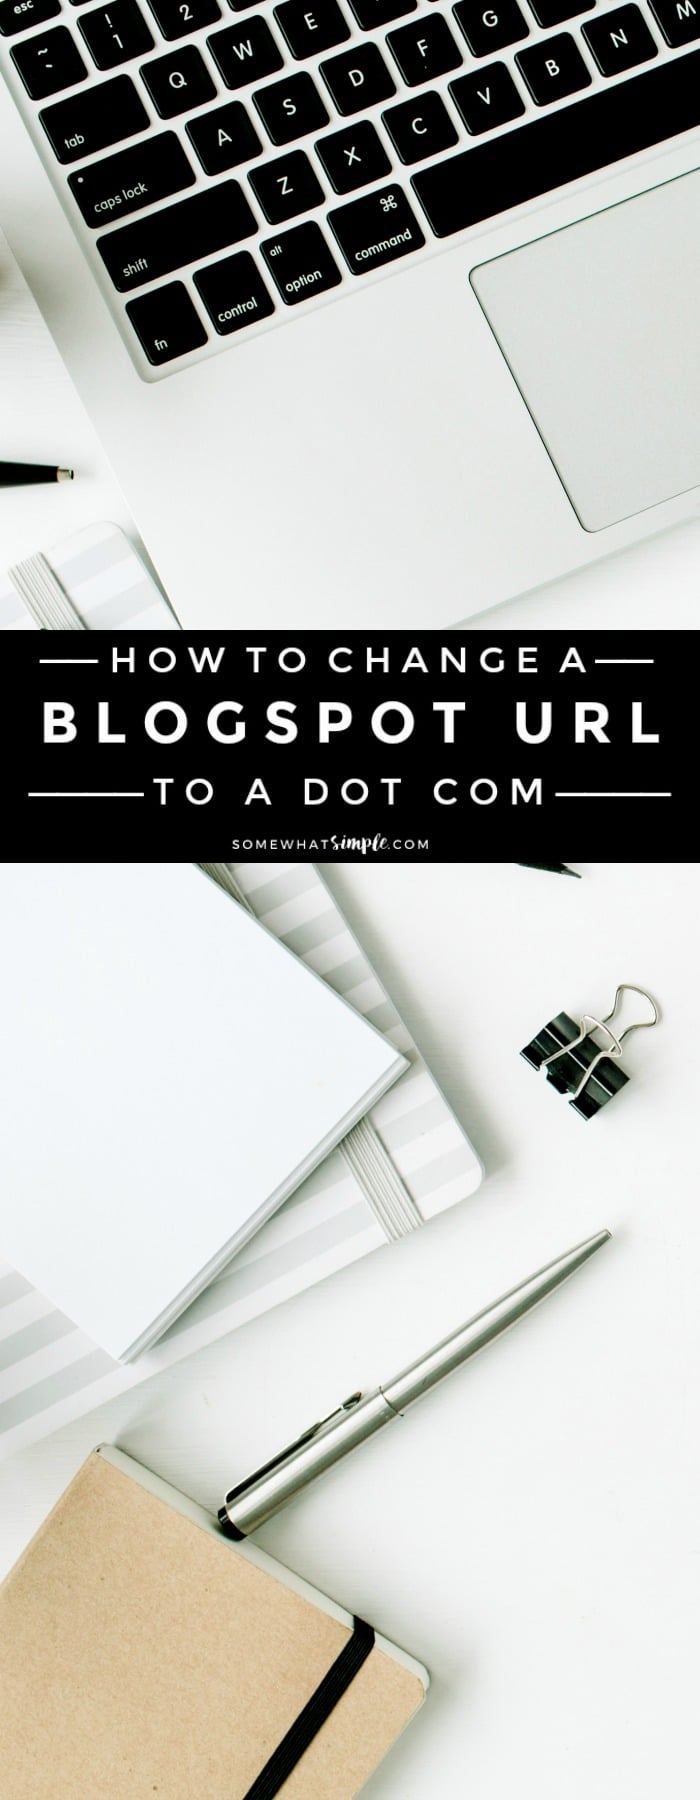 I'm going to show you how to EASILY change your blogspot URL to a dot com. Take your blog to the next level with our pictured step-by-step instructions showing the easy process! #bloggingtips #howtoswitchtoa.com #howto #howtoswitchfromblogspottoa.com via @somewhatsimple